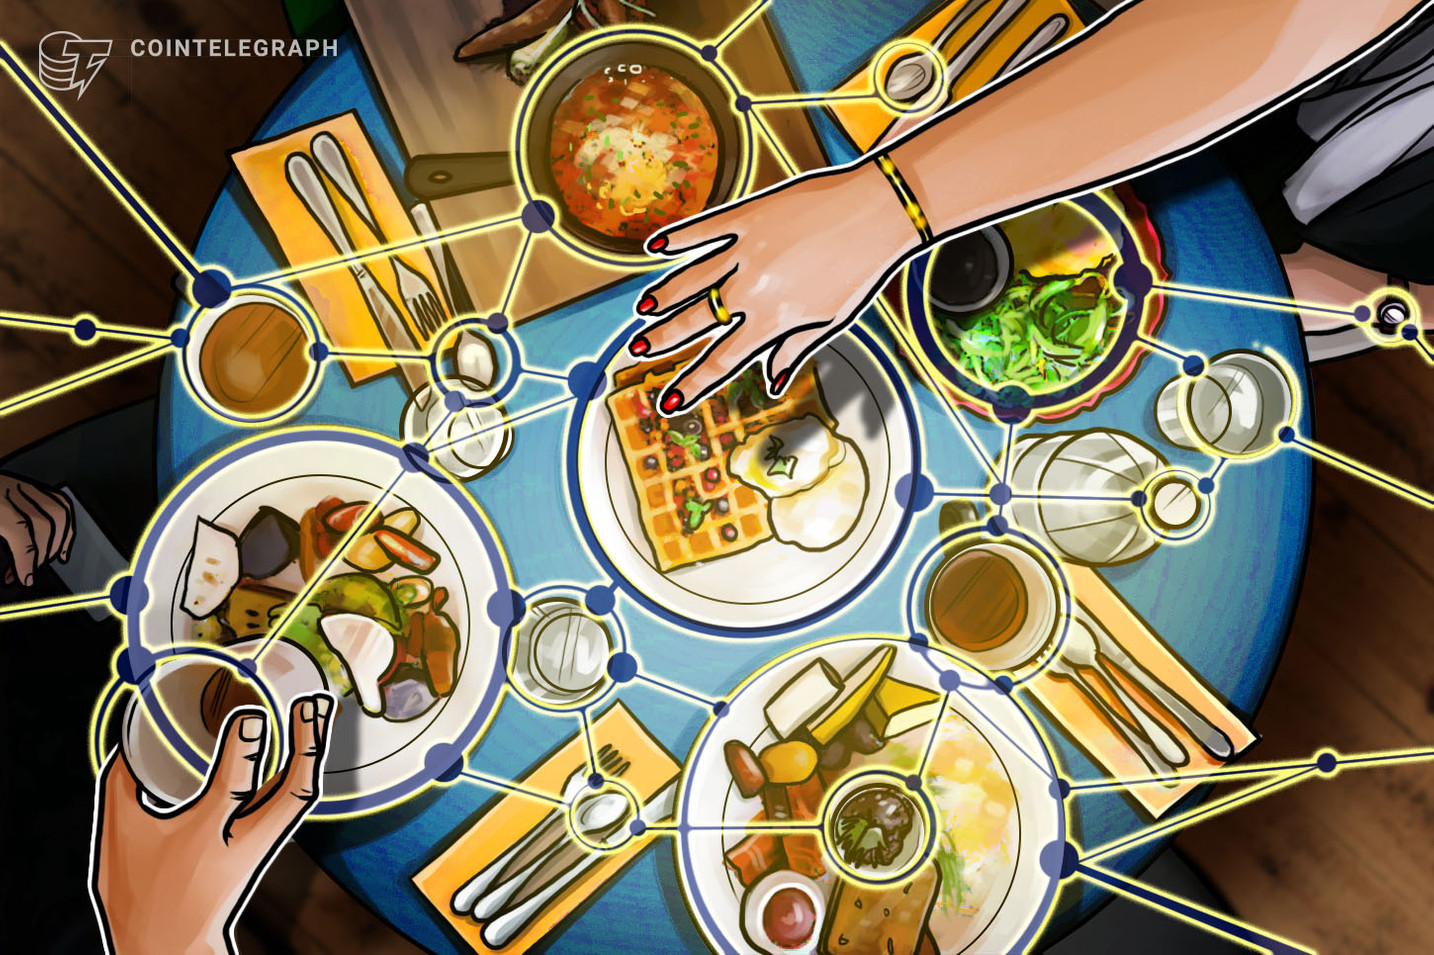 From South Korea to IBM Food Trust - How Blockchain Is Used in the Food Industry